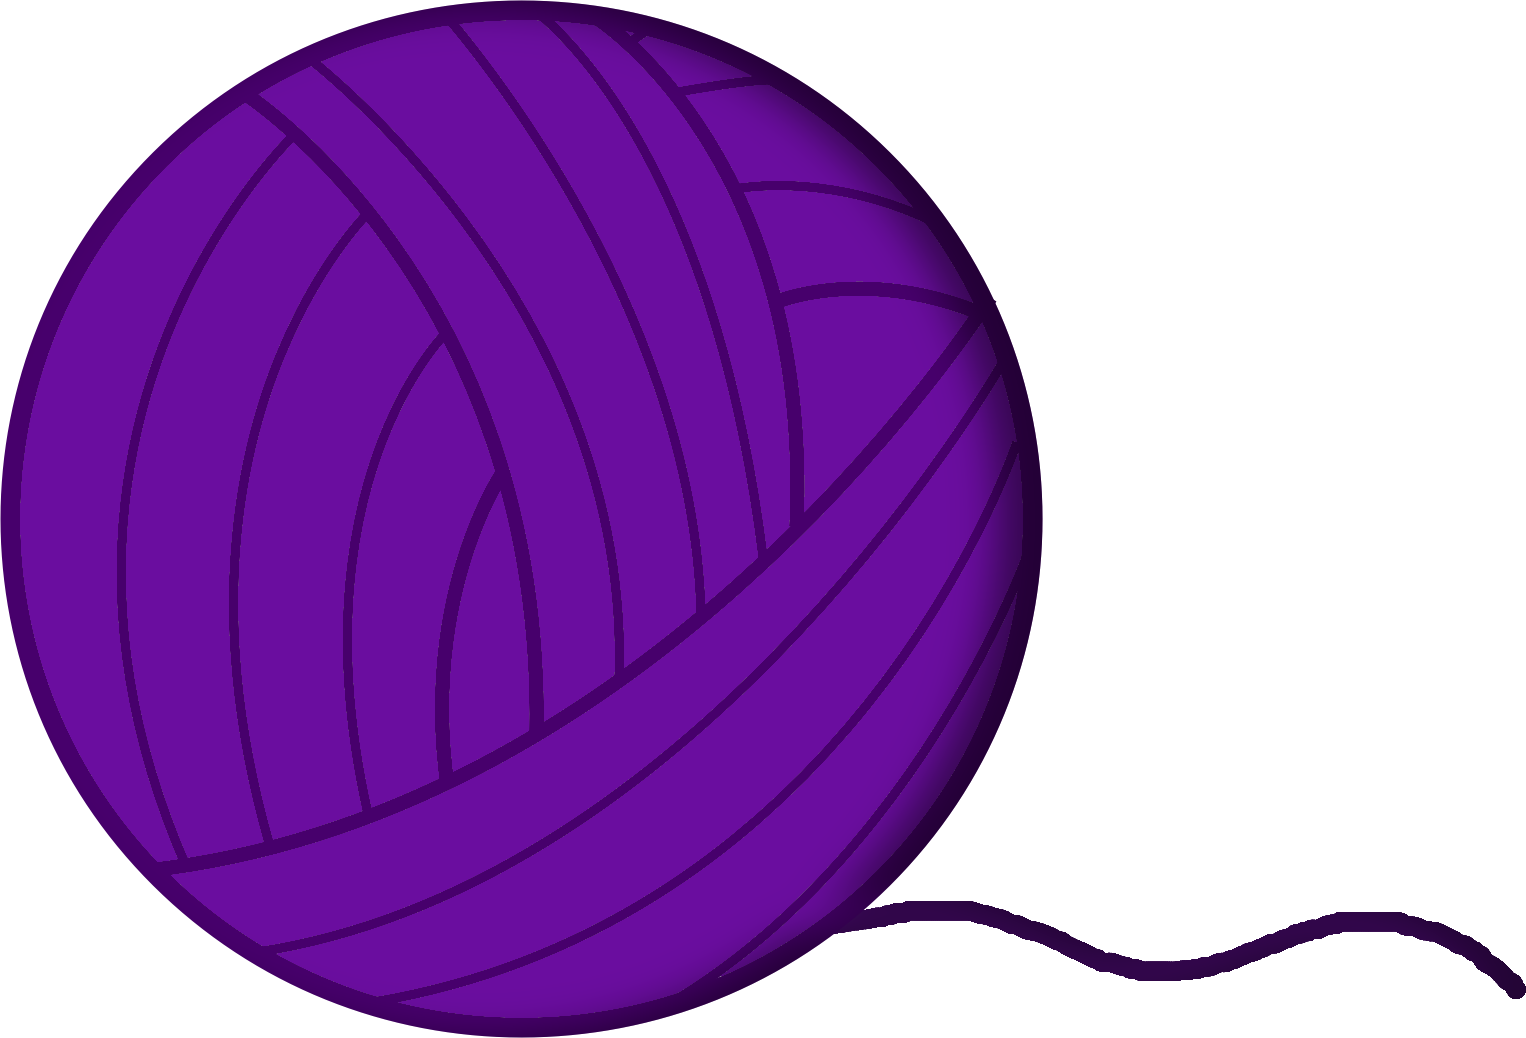 PNG Yarn Transparent Yarn.PNG Images. | PlusPNG